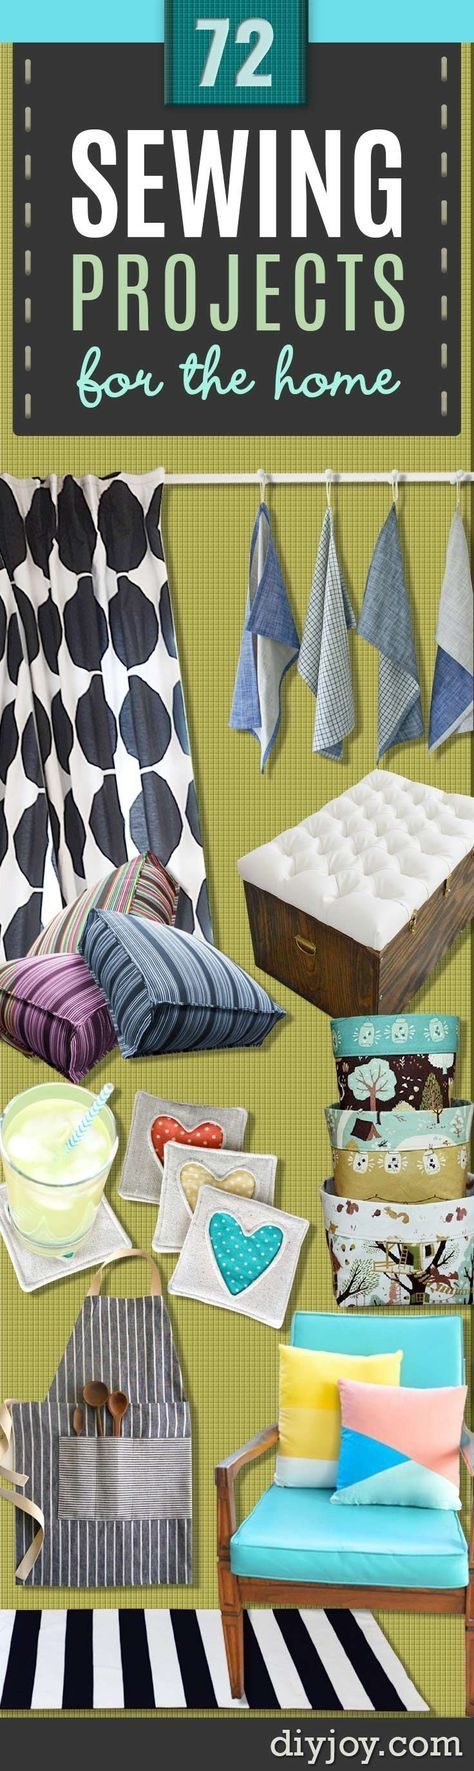 72 crafty sewing projects for the home costura patrones de ropa y 72 crafty sewing projects for the home solutioingenieria Gallery